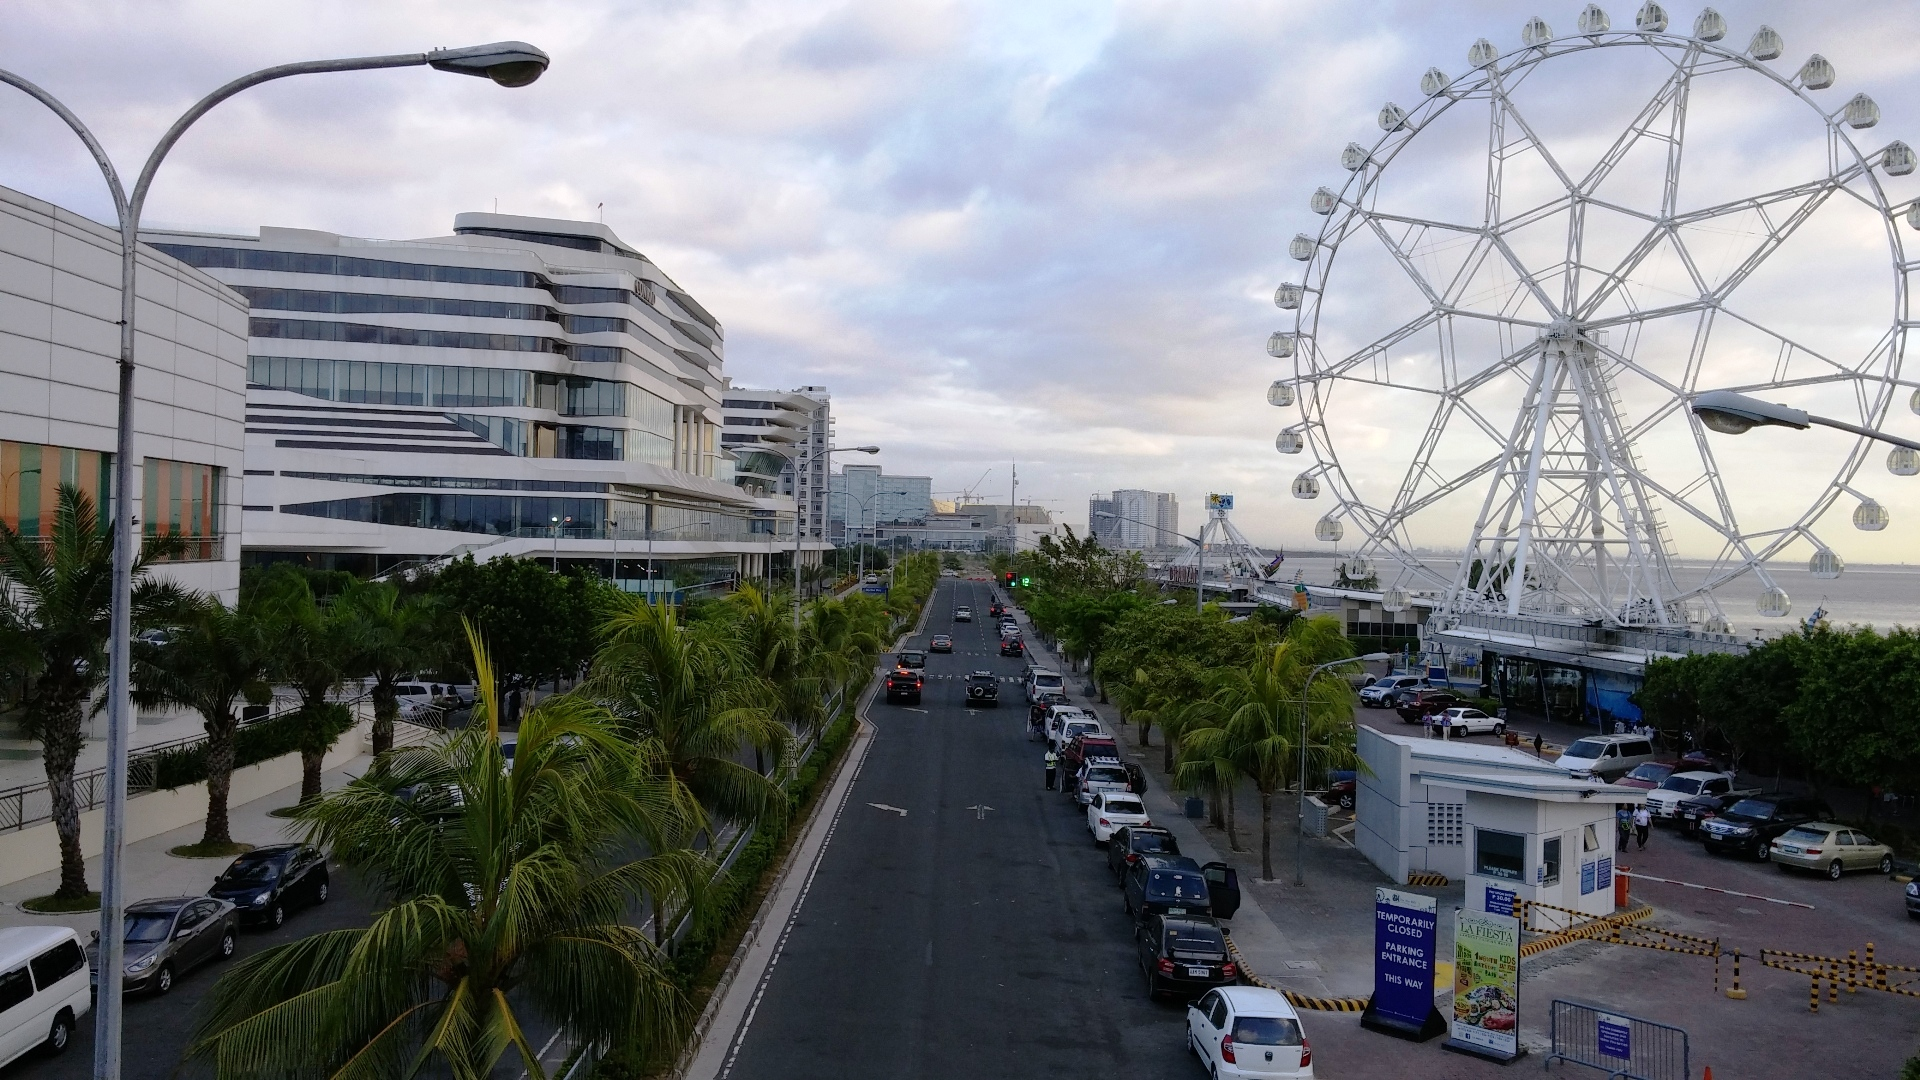 Mall of Asia, Seaside Blvd